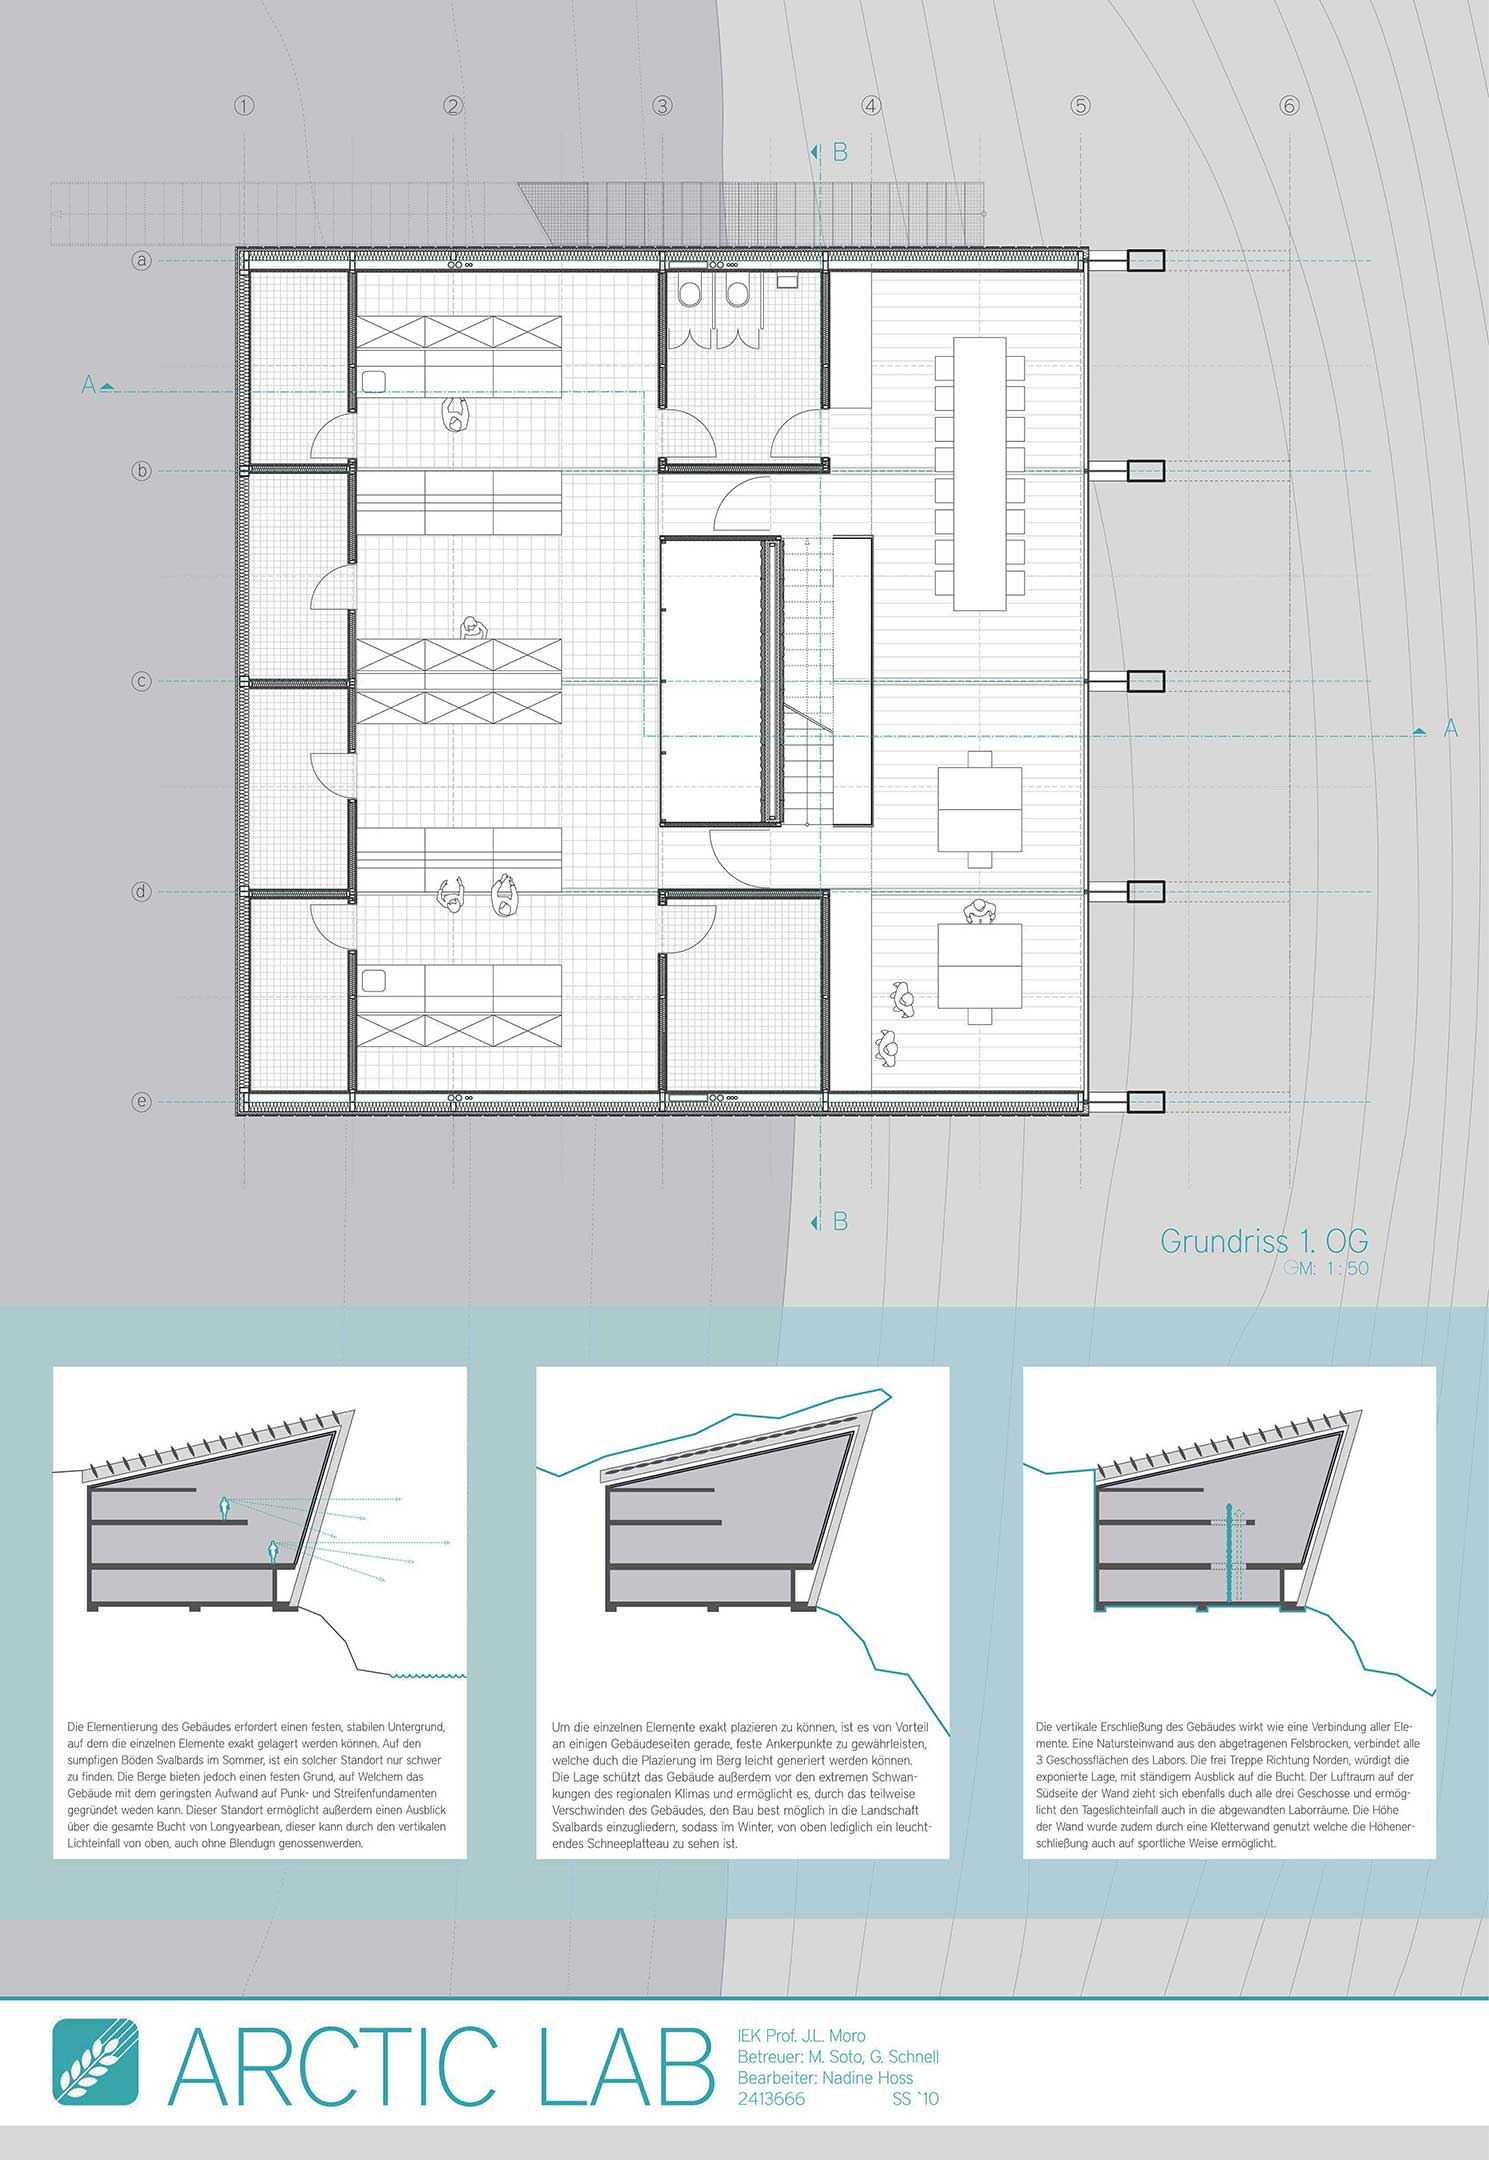 Design Studio Stuttgart Architectural Design Studio Arctic Lab Studio Ld